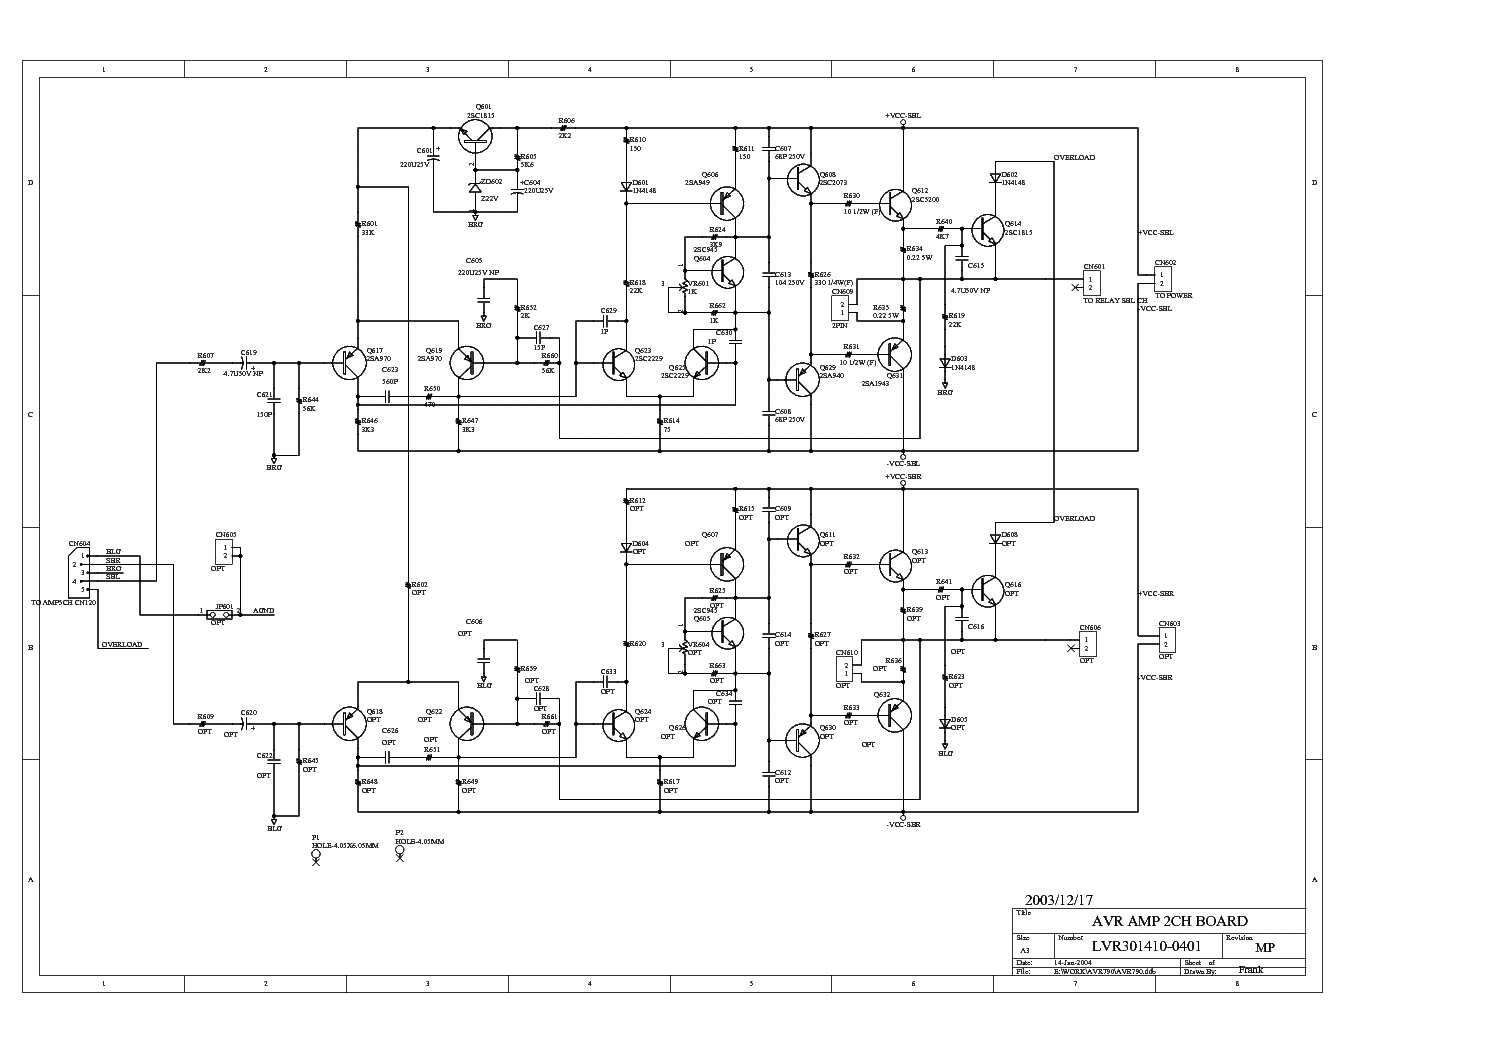 JAMO A300 Service Manual download, schematics, eeprom